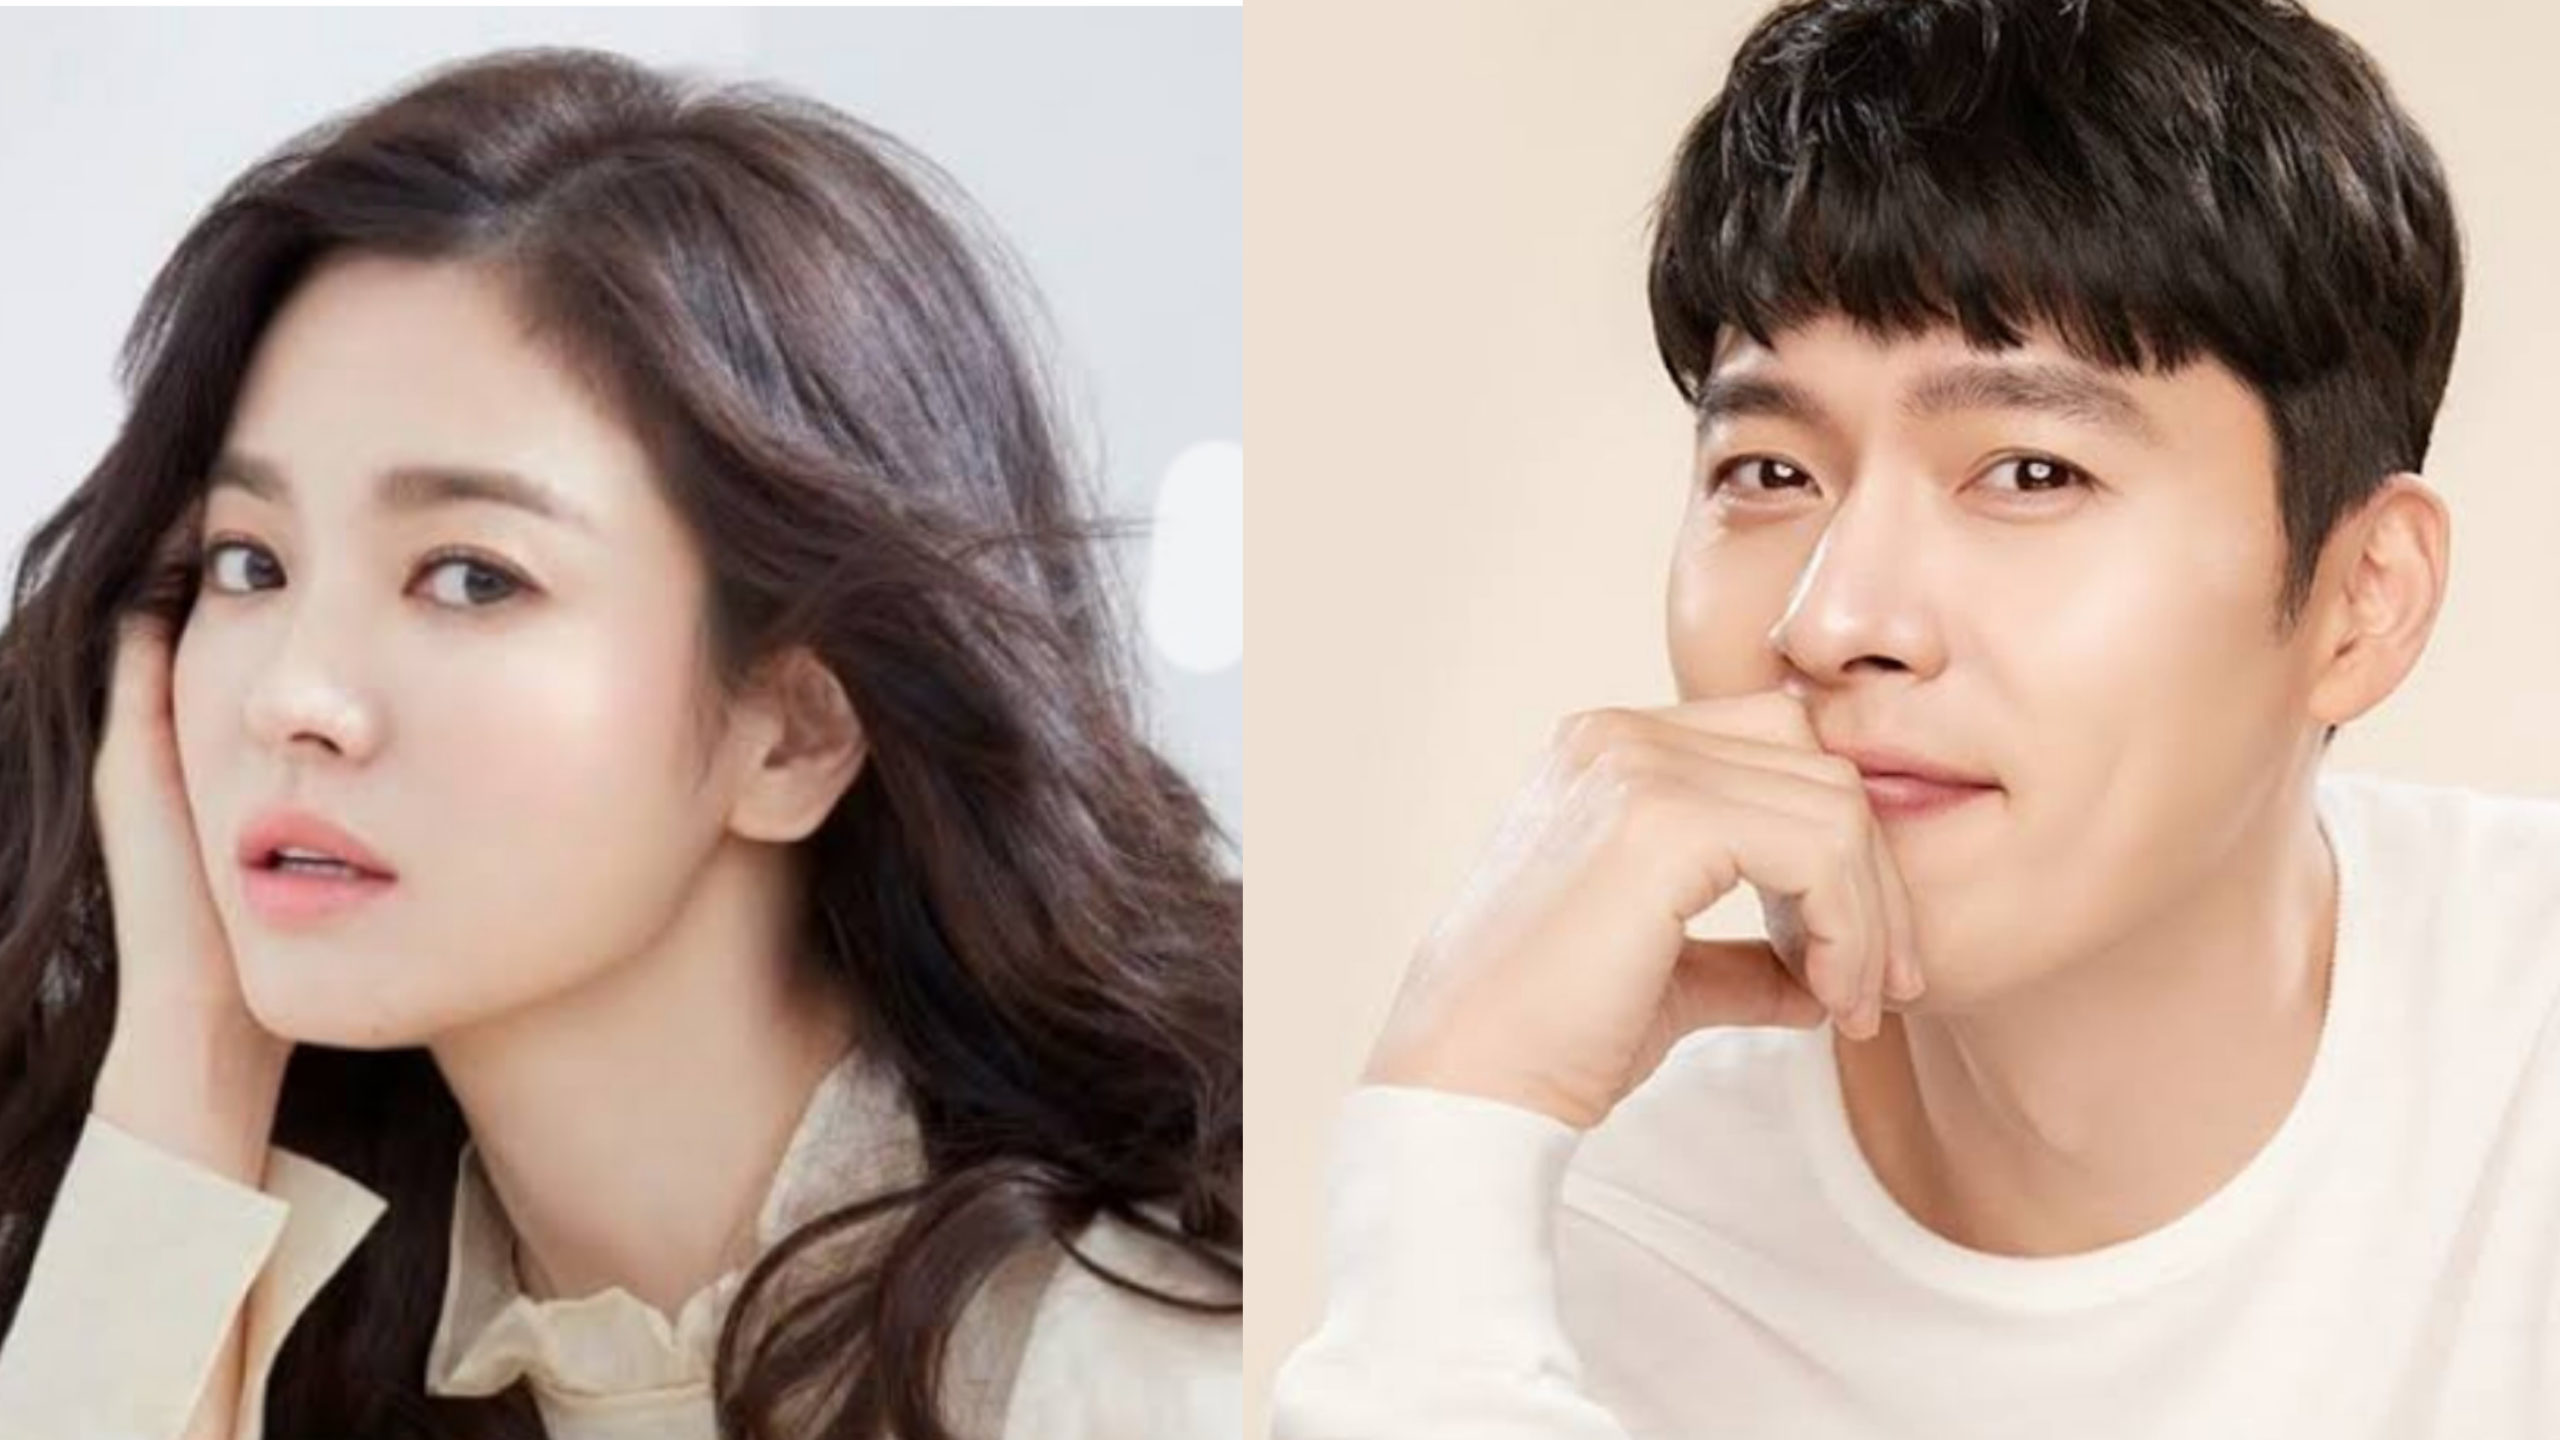 Song Hye Kyo and Hyun Bin are dating again? - KimchiStories